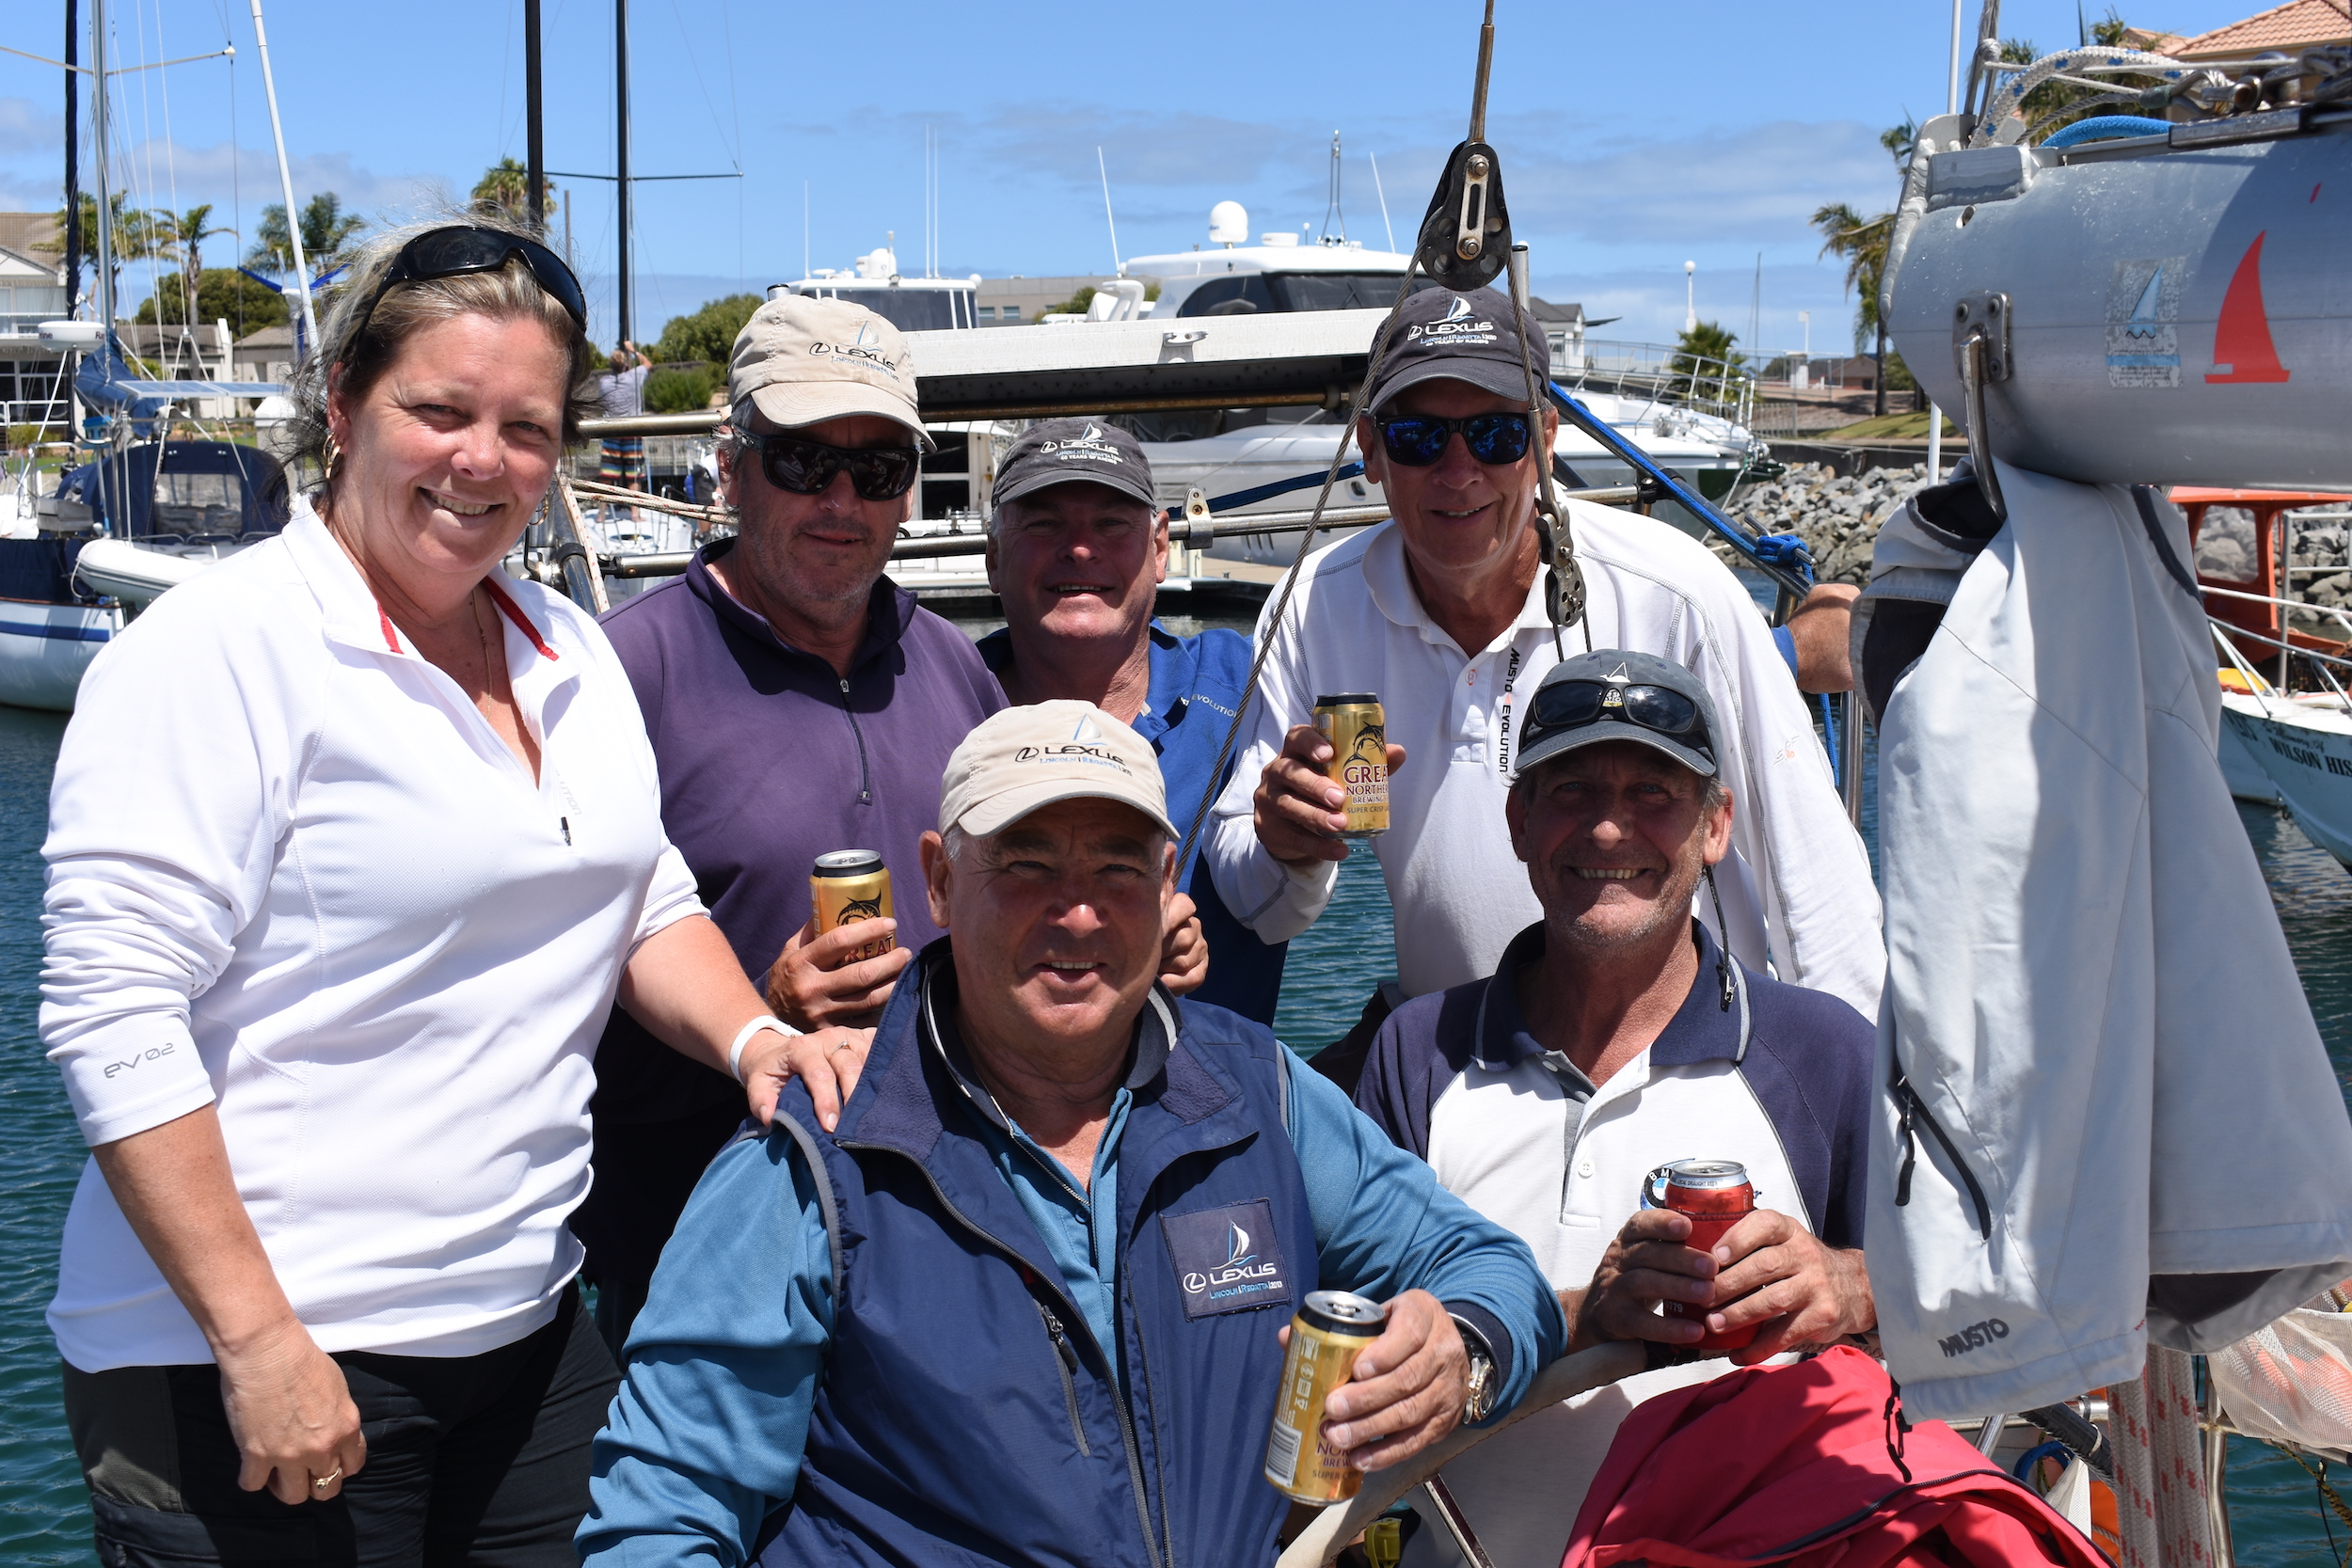 The Tanquery team of (back) Pip, Snert, Brasso, Trevor; front: Bruno and Tooly. Photo: Down Under Sail